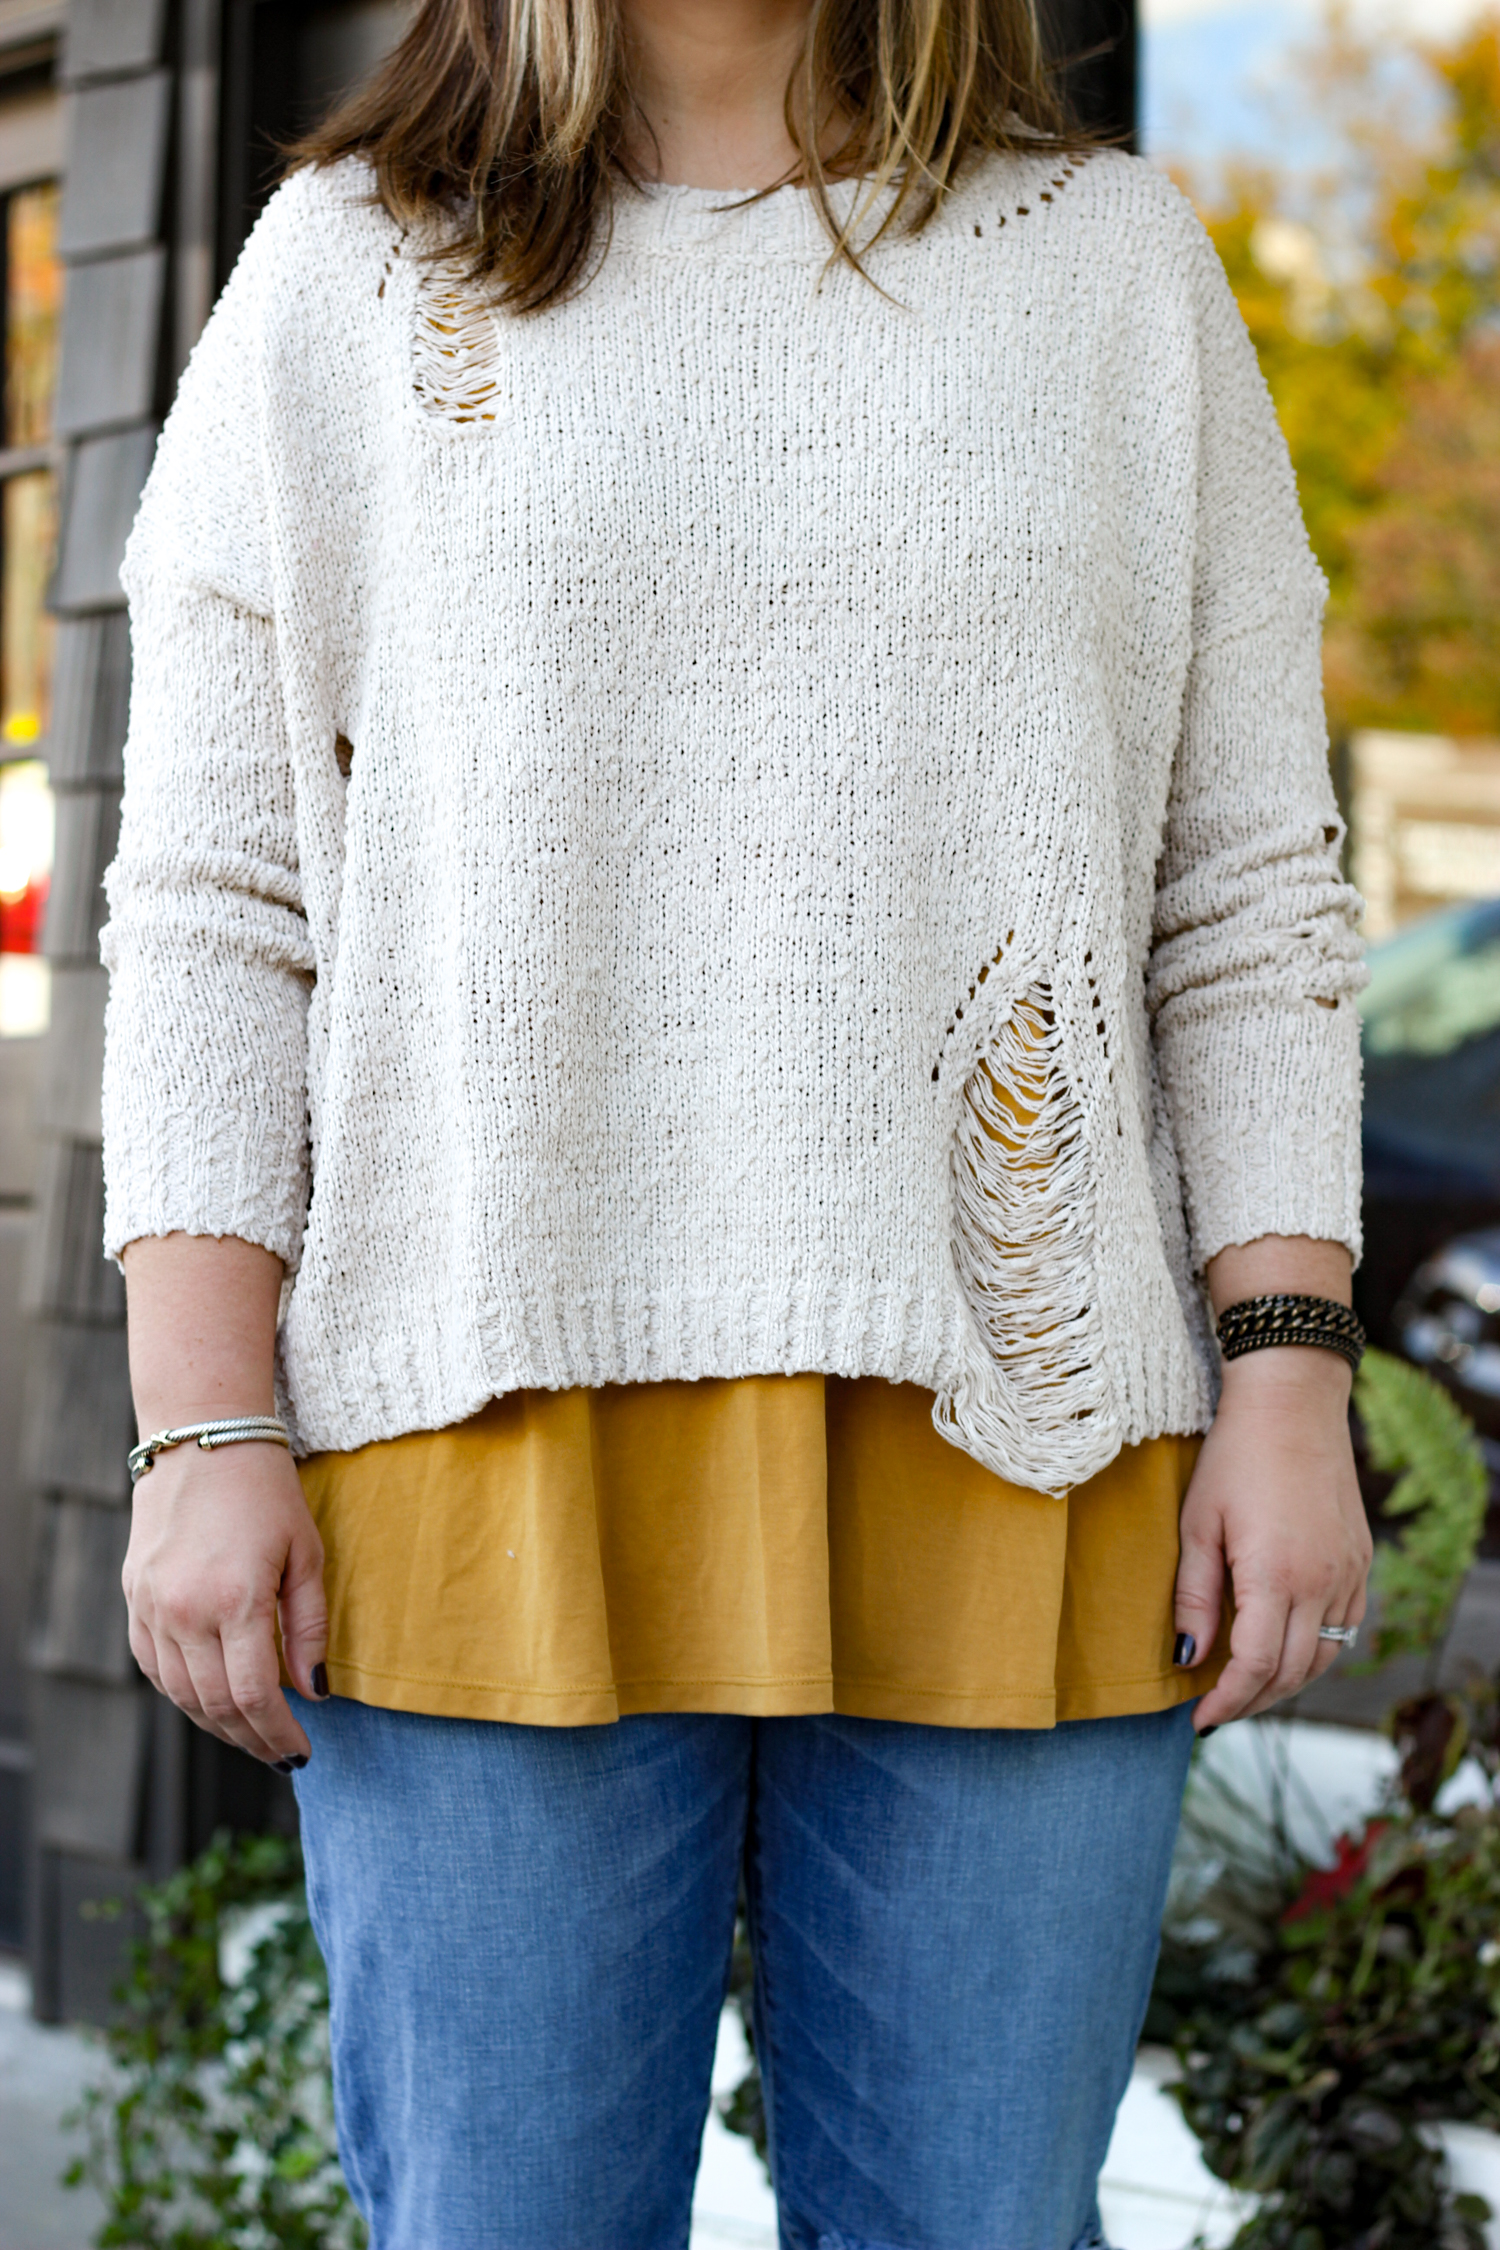 Tips for Layering Sweaters | Just Peachy Blog